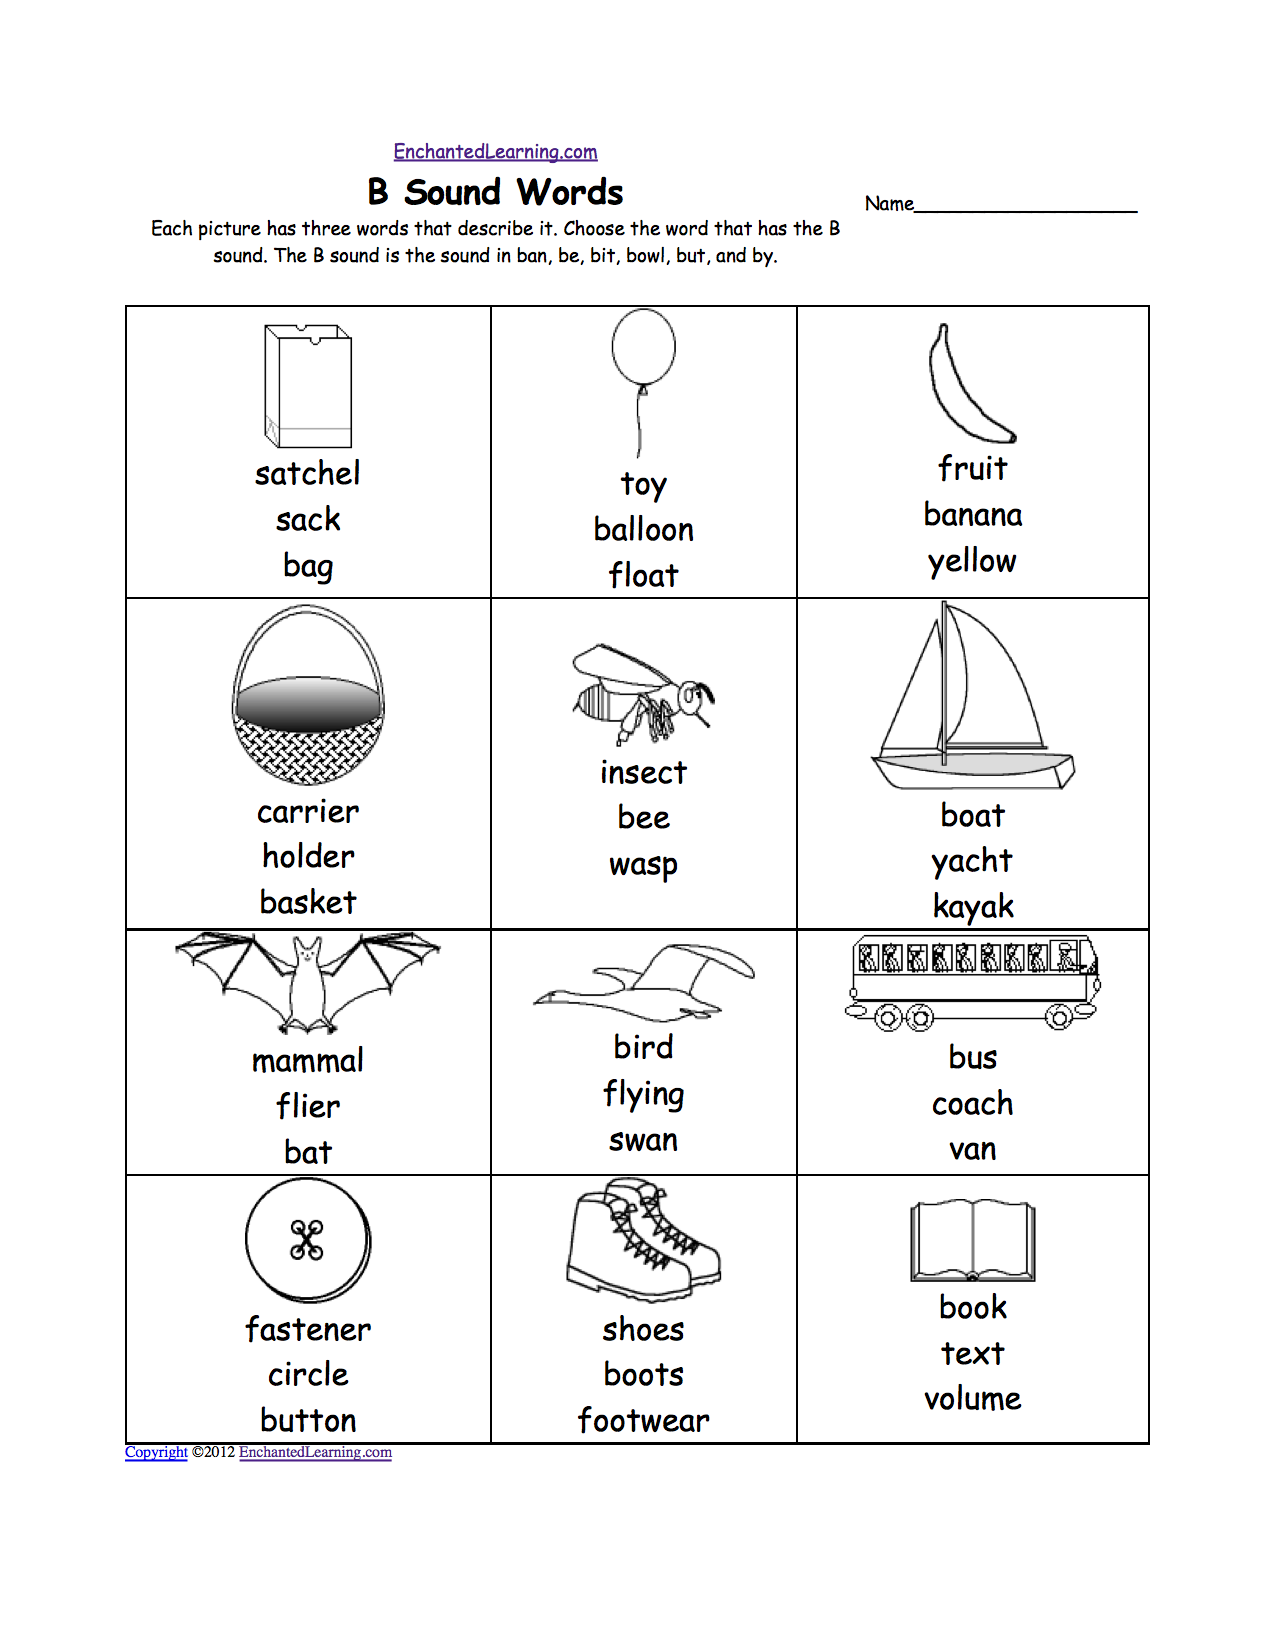 Aldiablosus  Mesmerizing Phonics Worksheets Multiple Choice Worksheets To Print  With Remarkable Quotbquot Sound Phonics Worksheet Multiple Choice Each Picture Has Three Words That Describe It Choose The Word That Has A Quotbquot Sound The Quotbquot Sound Is The Sound  With Comely Rd Grade Antonyms Worksheet Also Printable Picture Sequencing Worksheets In Addition Greatest Common Factor Worksheets With Answers And Freedom Writers Worksheets As Well As Algebra Revision Worksheet Additionally Shape Symmetry Worksheet From Enchantedlearningcom With Aldiablosus  Remarkable Phonics Worksheets Multiple Choice Worksheets To Print  With Comely Quotbquot Sound Phonics Worksheet Multiple Choice Each Picture Has Three Words That Describe It Choose The Word That Has A Quotbquot Sound The Quotbquot Sound Is The Sound  And Mesmerizing Rd Grade Antonyms Worksheet Also Printable Picture Sequencing Worksheets In Addition Greatest Common Factor Worksheets With Answers From Enchantedlearningcom